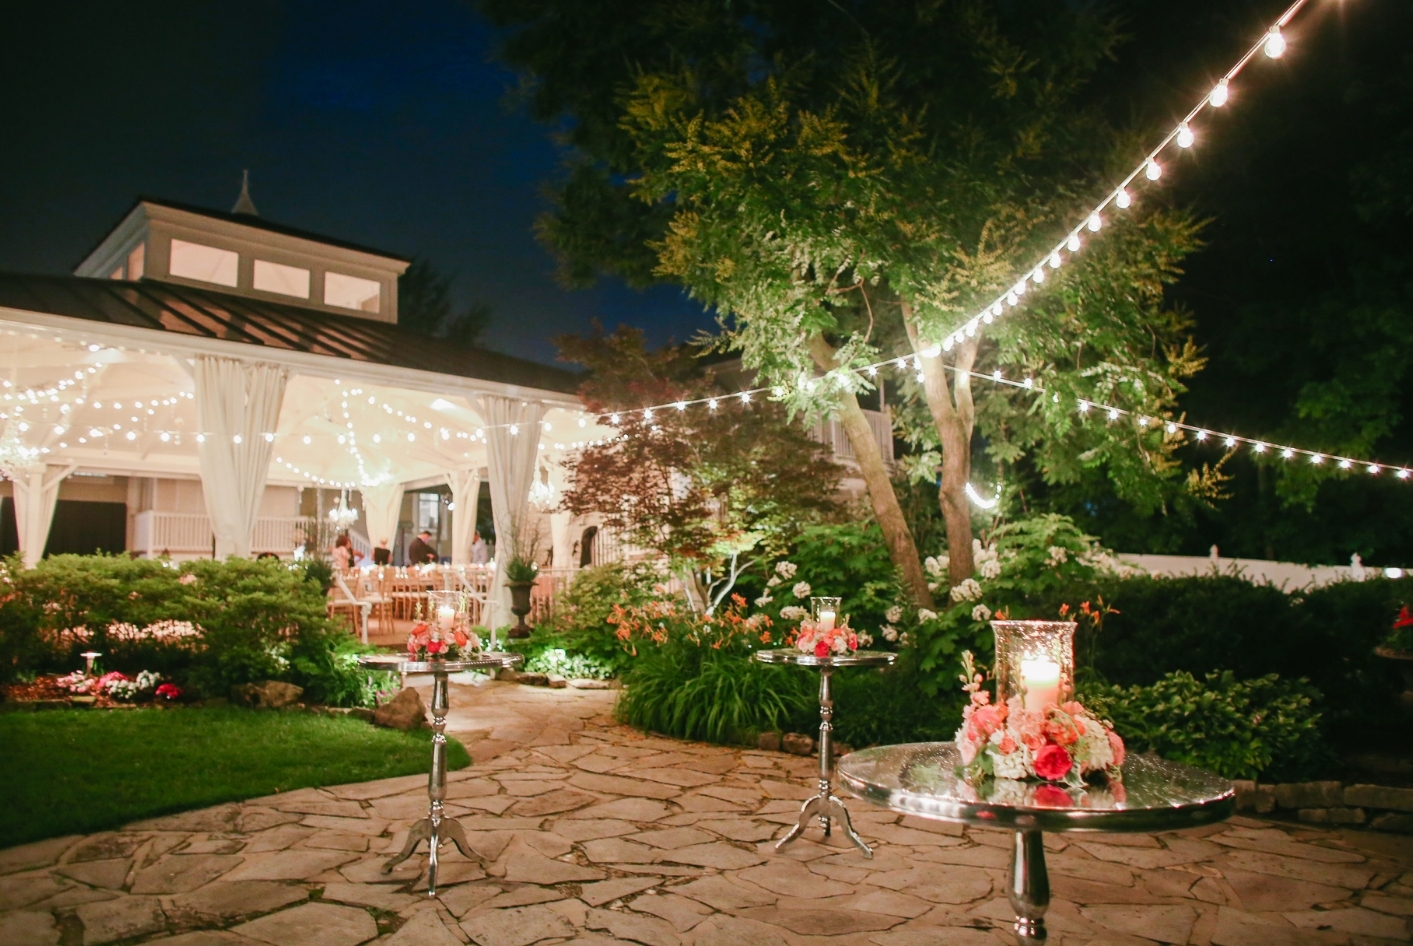 3 Things to Consider When Choosing Your Wedding Venue